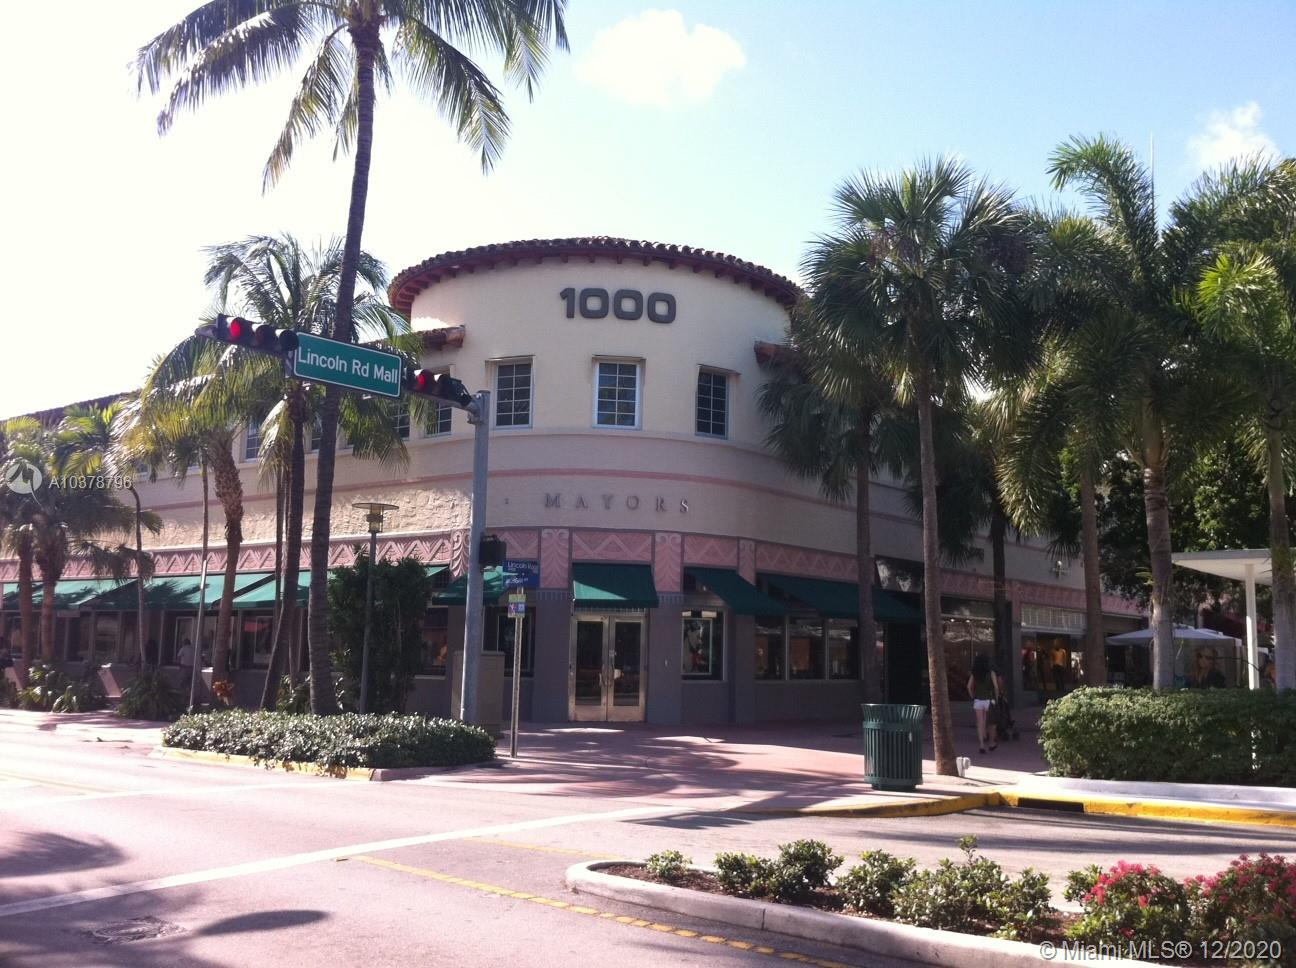 1000 Lincoln Rd # 215, Miami Beach, Florida 33139, ,Commercial Sale,For Sale,1000 Lincoln Rd # 215,A10378796